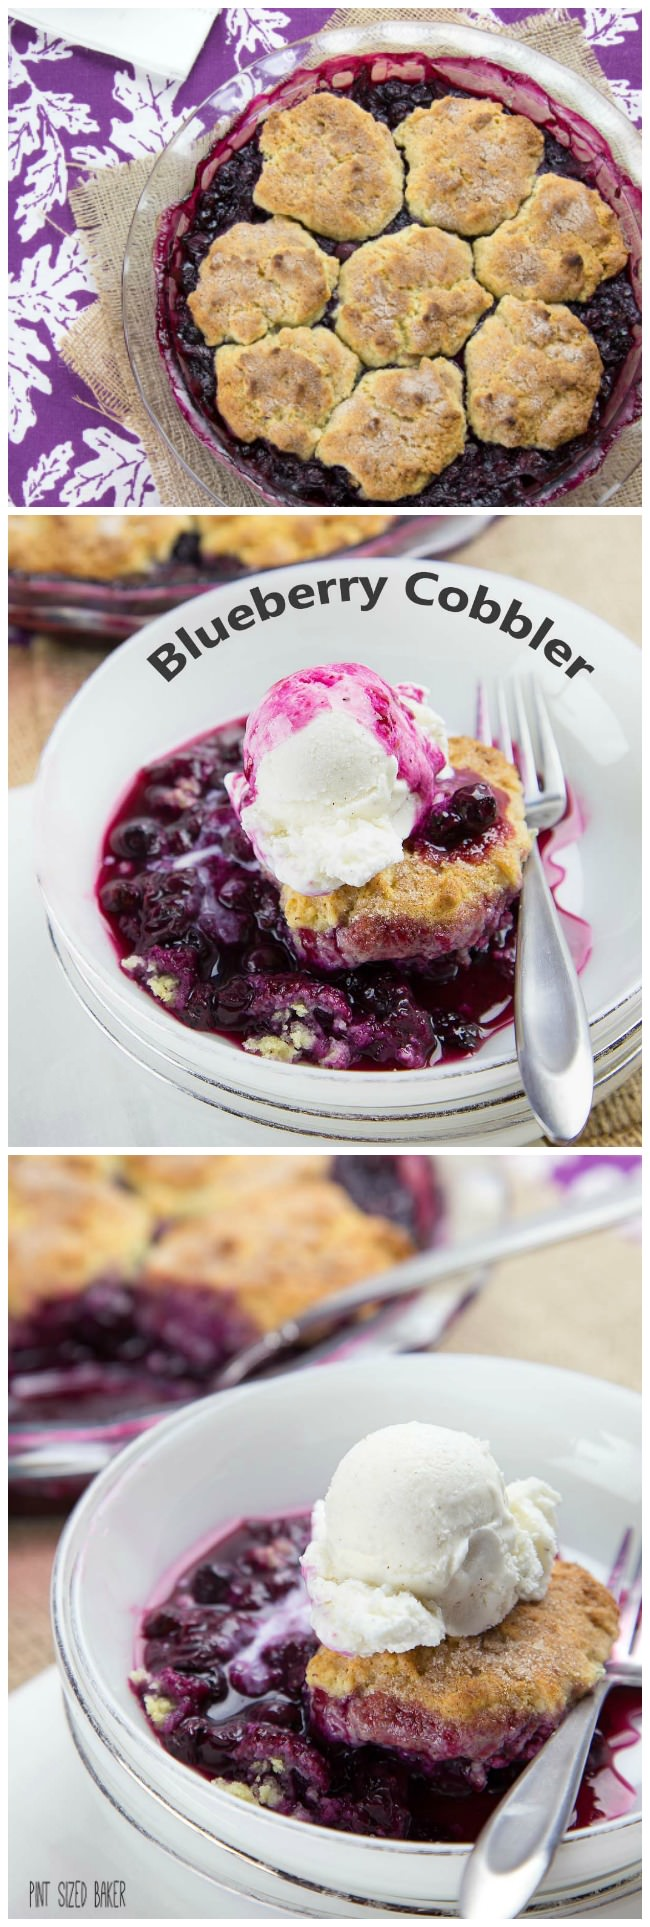 Easy and Delicious - this one pan blueberry cobbler will have you coming back for more!